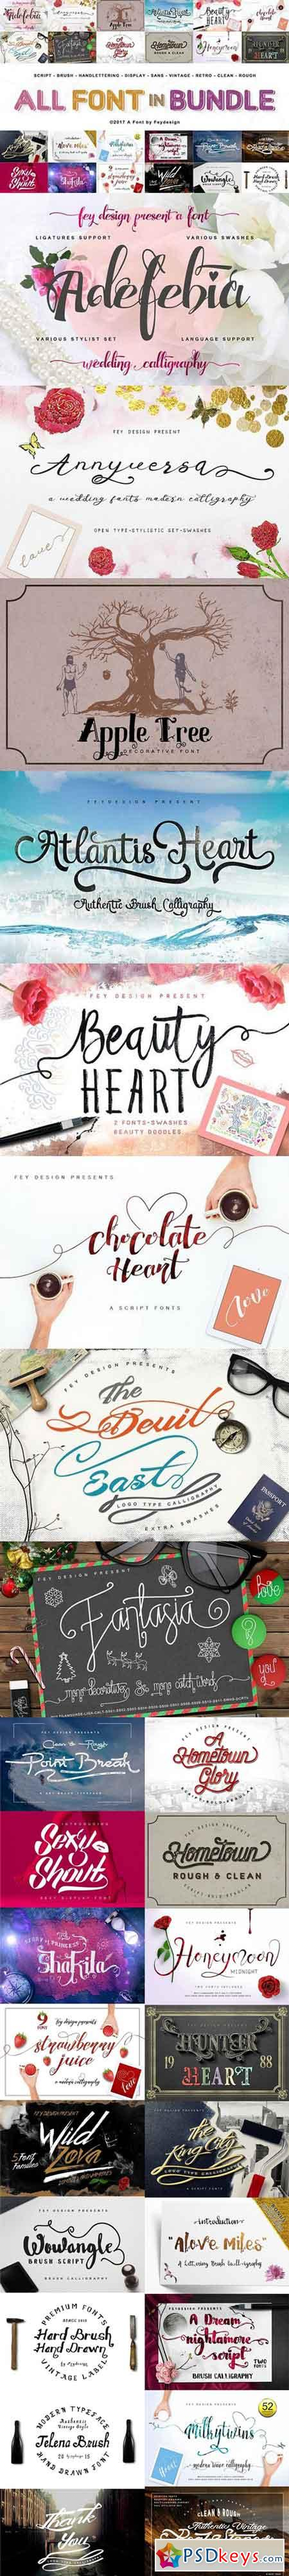 All Font in Bundle 1213908